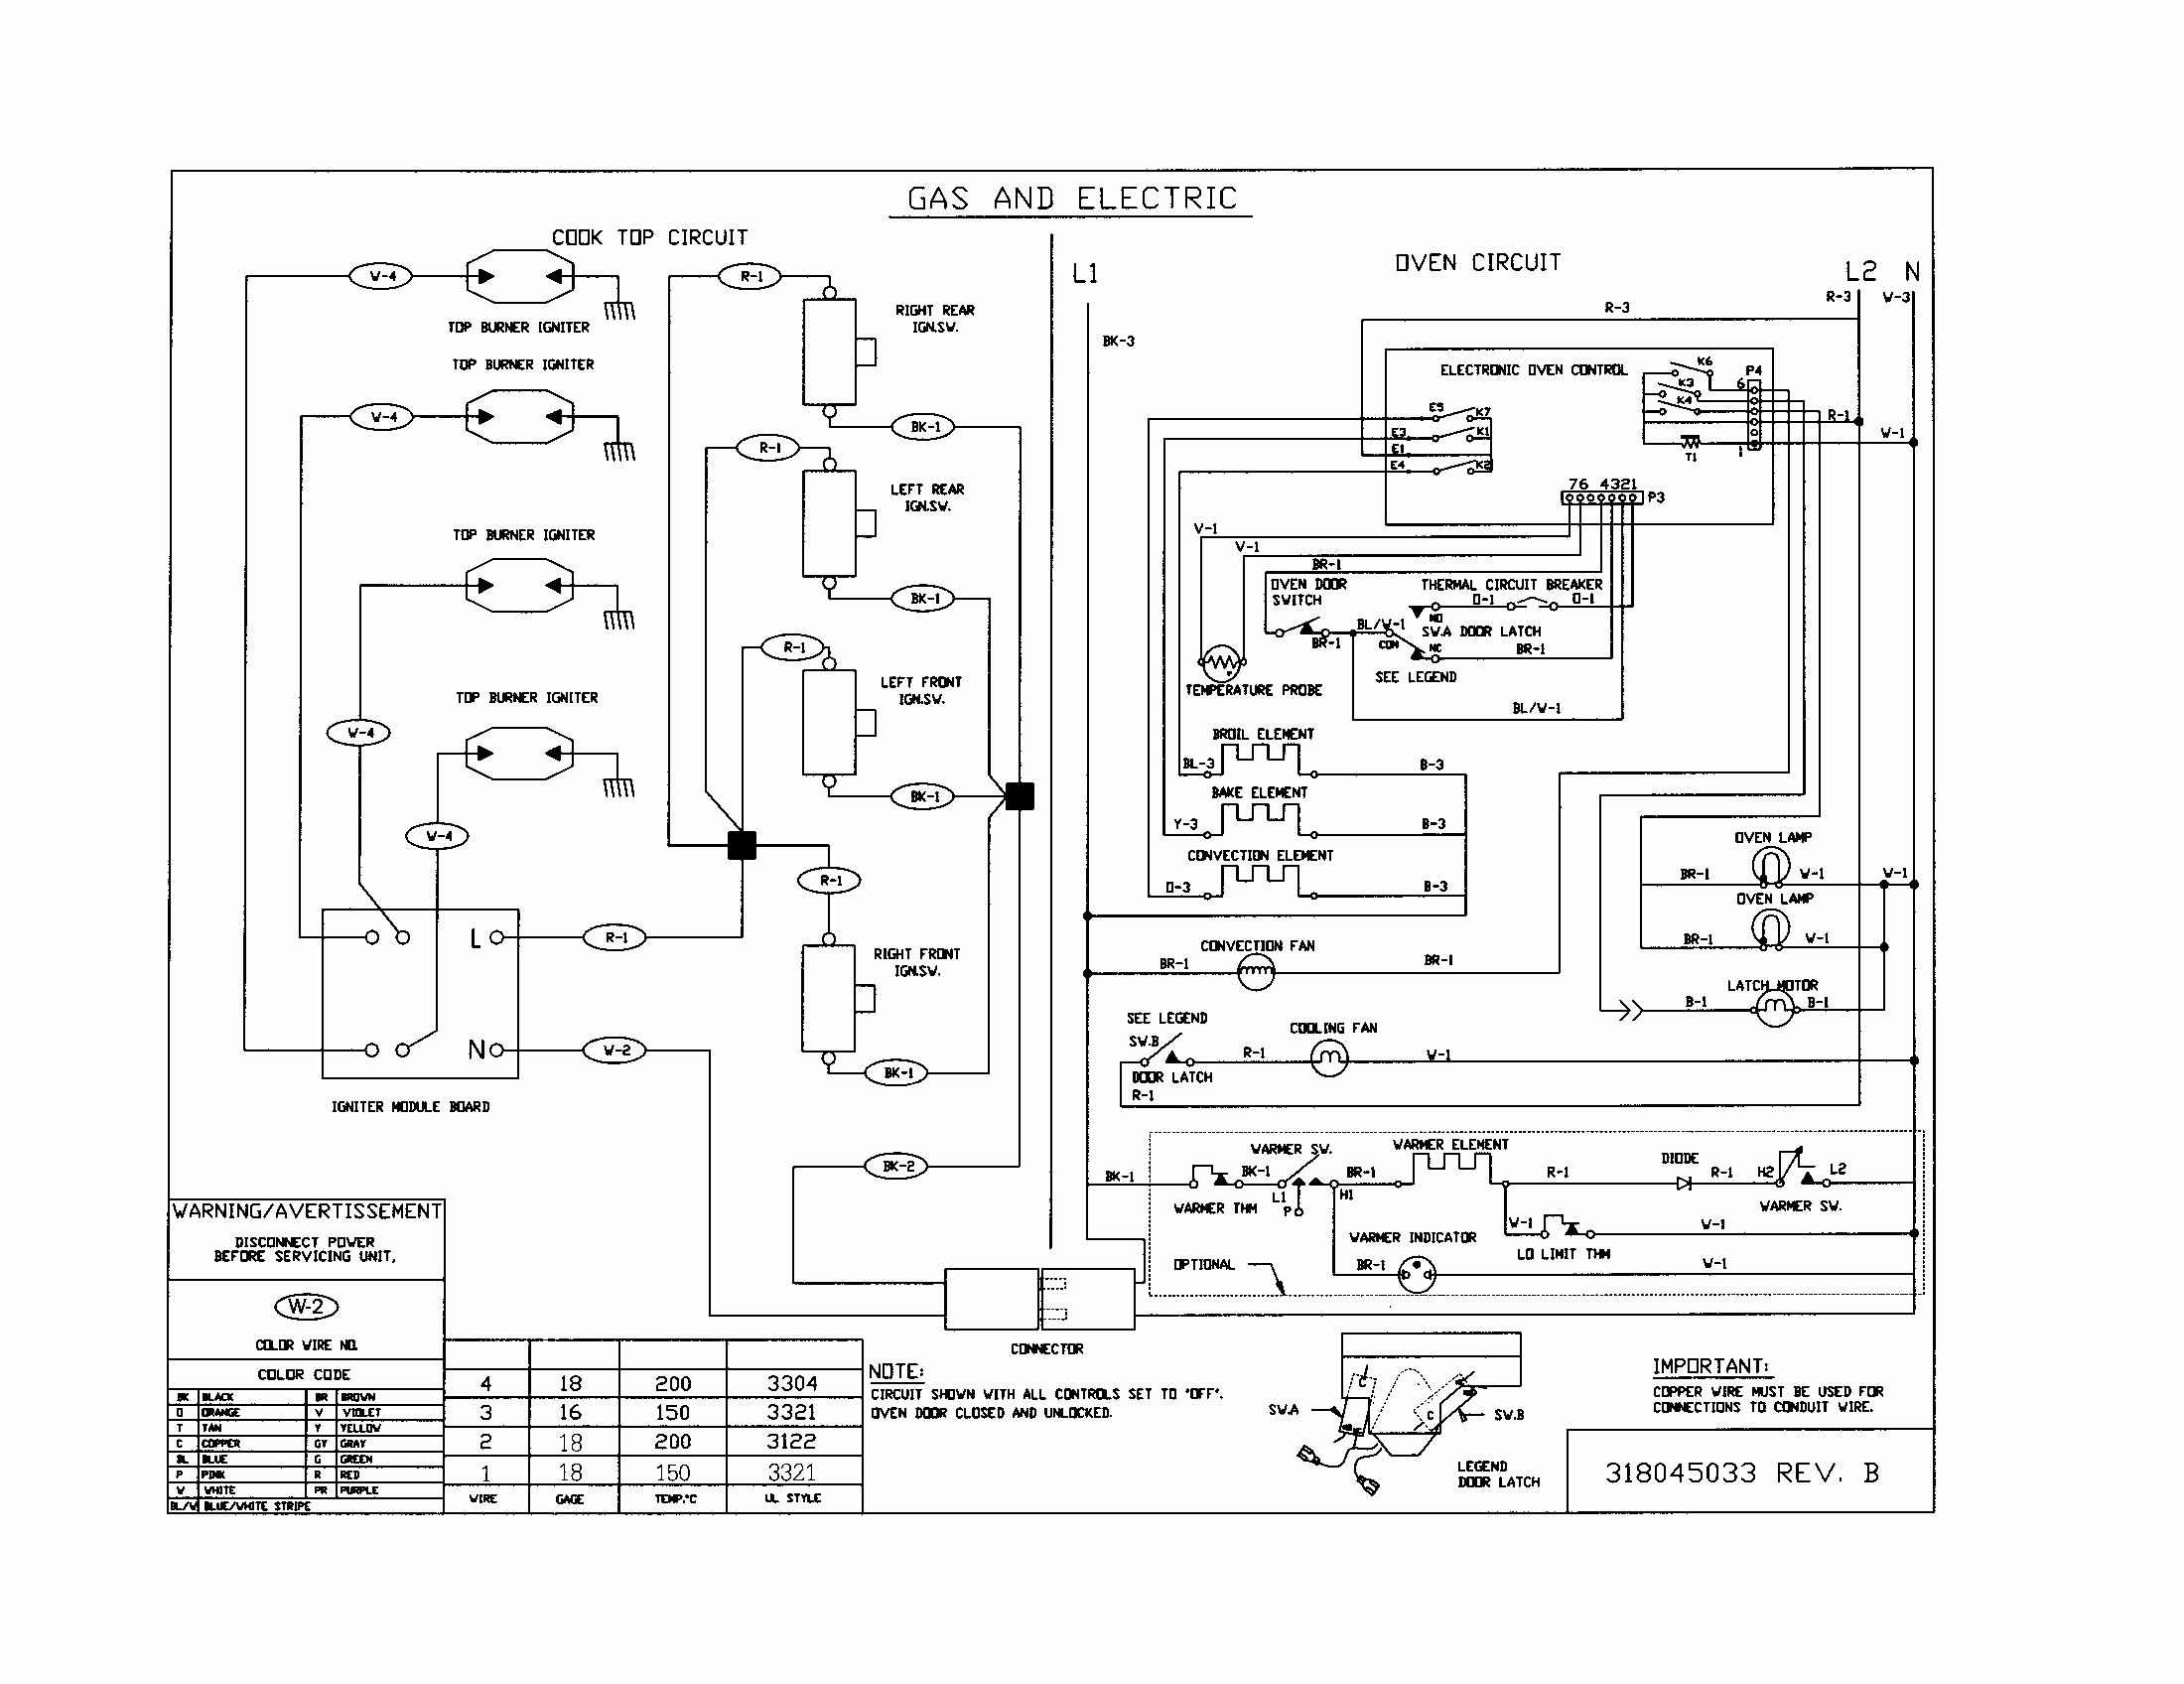 kenmore refrigerator wiring diagram Download-Full Size of Wiring Diagram Whirlpool Cabrio Dryer Wiring Diagram Elegant Kenmore Refrigerator Wiring Schematic 7-h